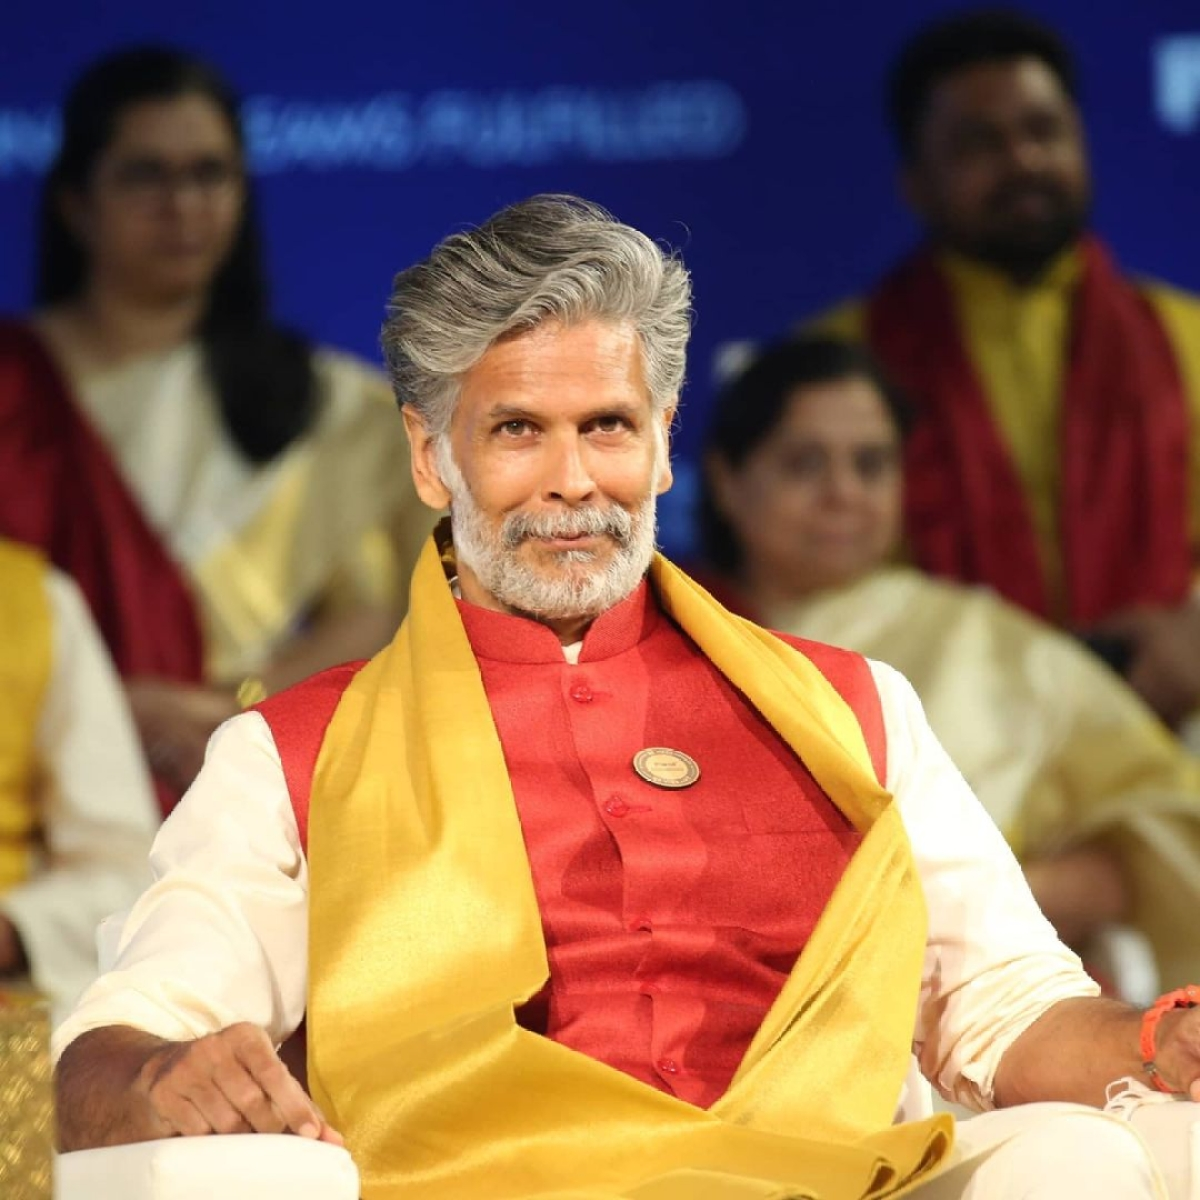 Milind Soman shares health update after testing positive for COVID-19, says 'difficult to say how I got infected'